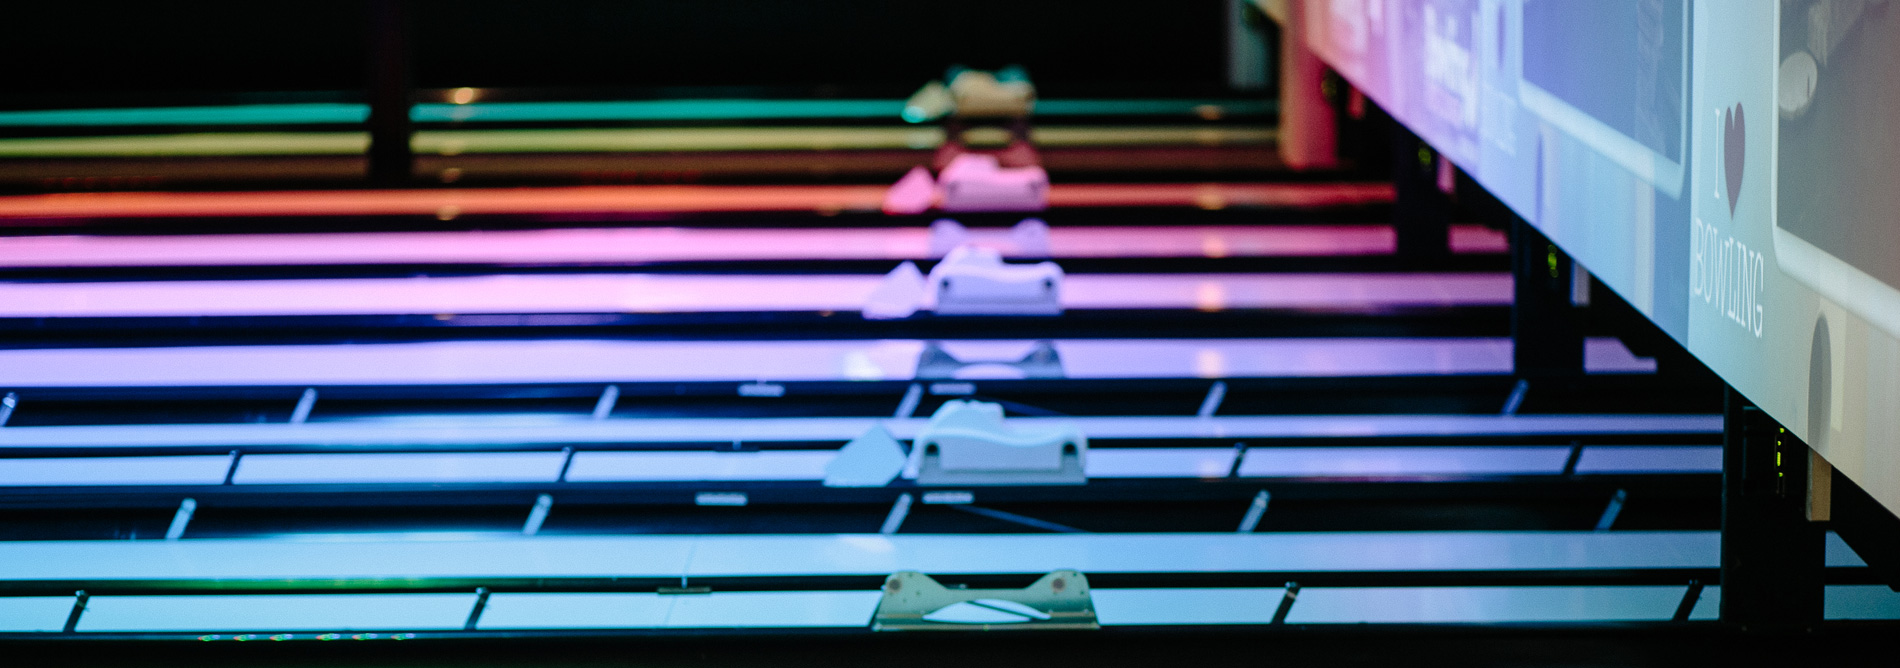 Bowling-QubicaAMF-lane-accessories-FEATURES-banner.jpg